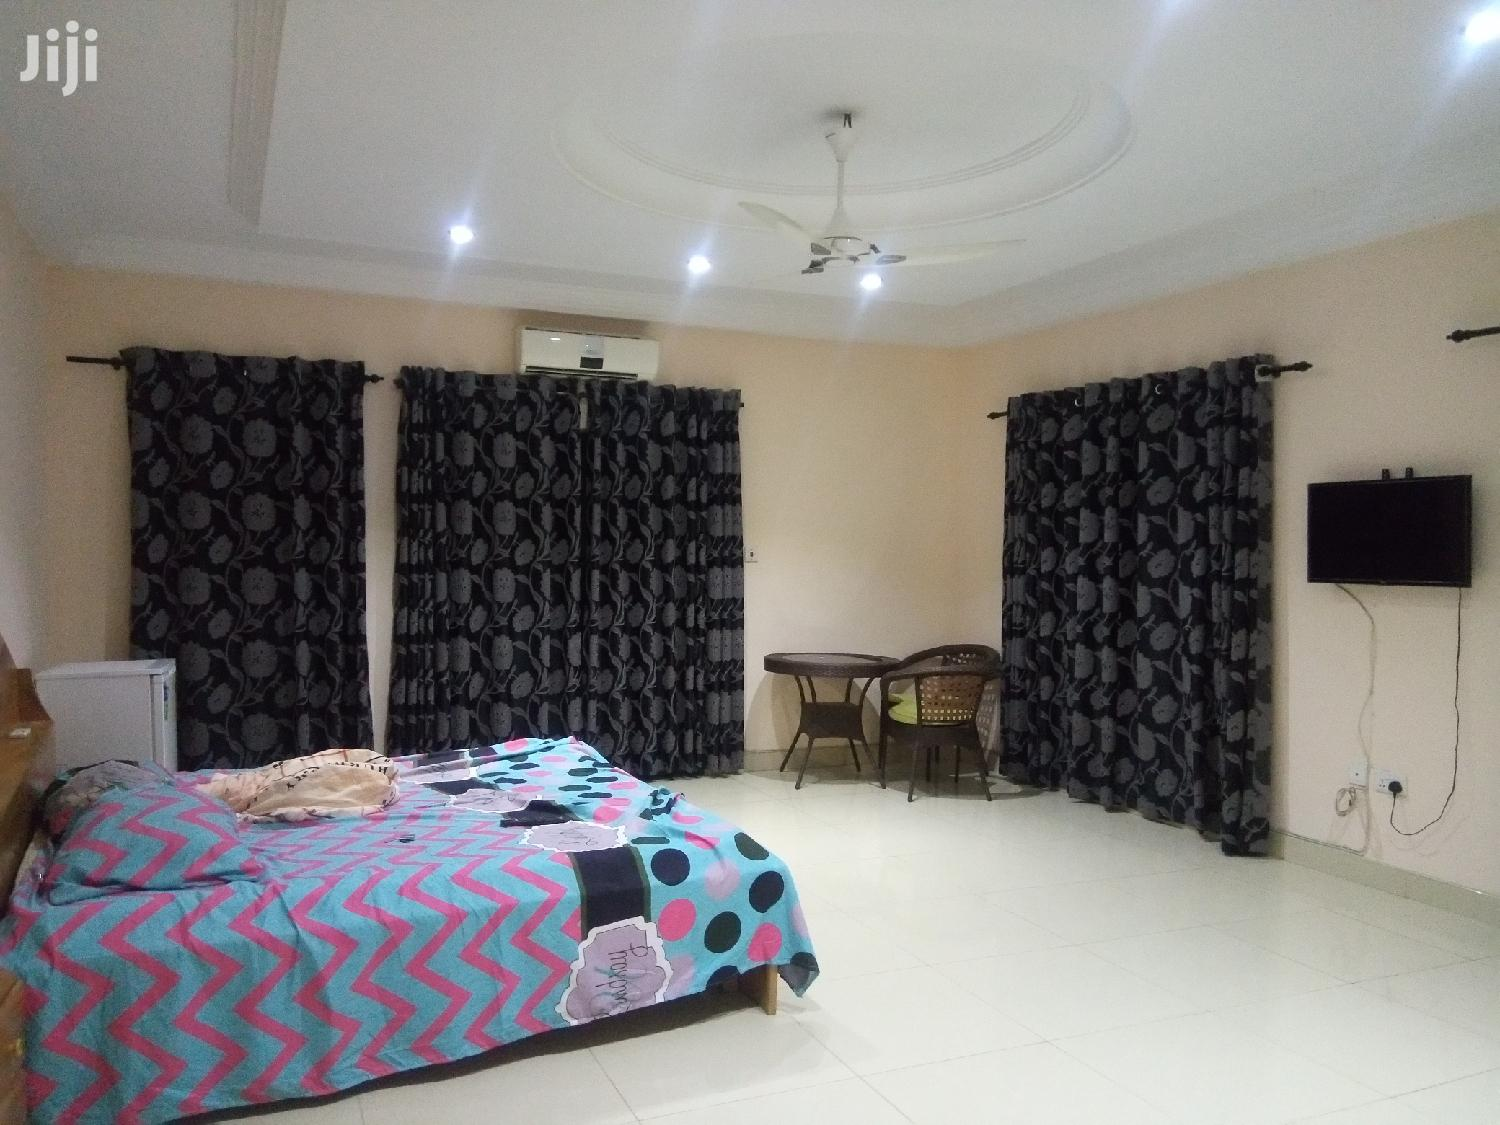 One Bedroom Studio Room Furnished Apartment | Houses & Apartments For Rent for sale in East Legon, Greater Accra, Ghana